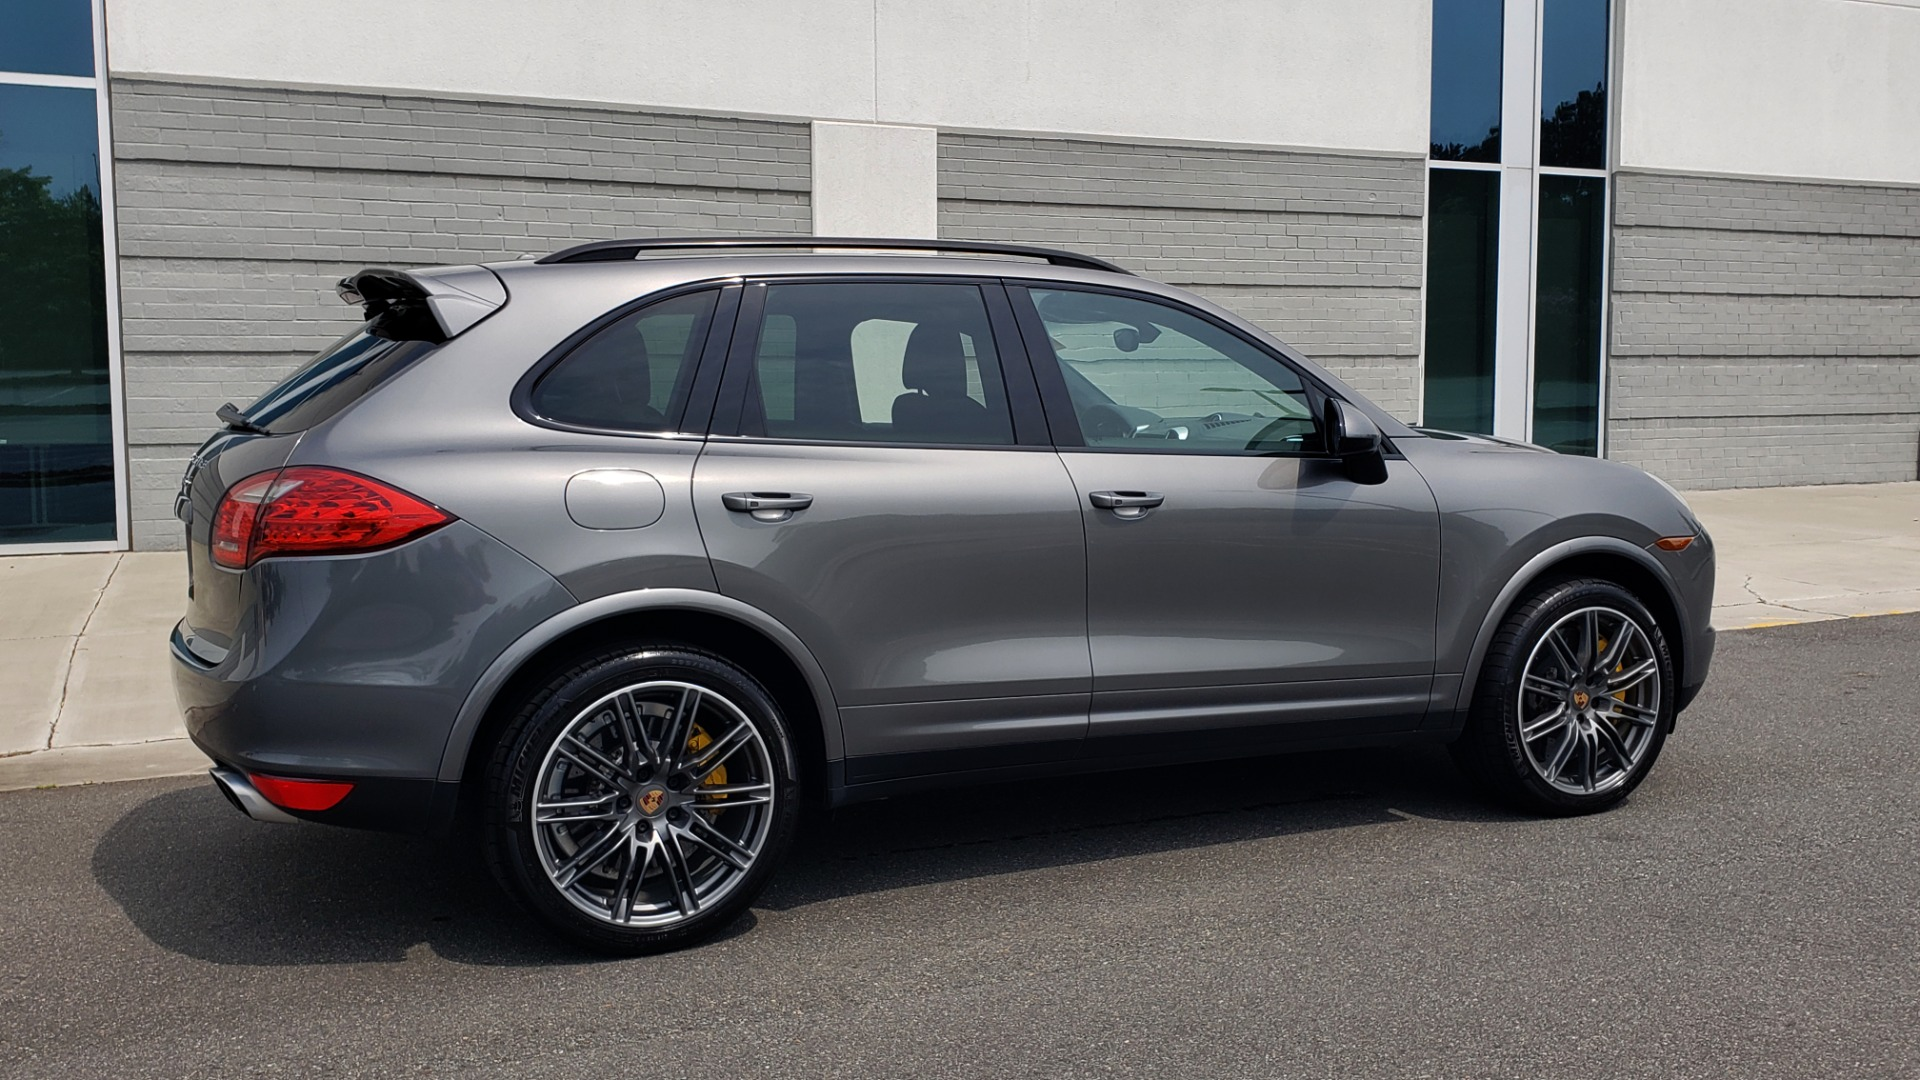 Used 2014 Porsche CAYENNE TURBO S / AWD / NAV / BOSE / PANO-ROOF / LCA / REARVIEW for sale Sold at Formula Imports in Charlotte NC 28227 8